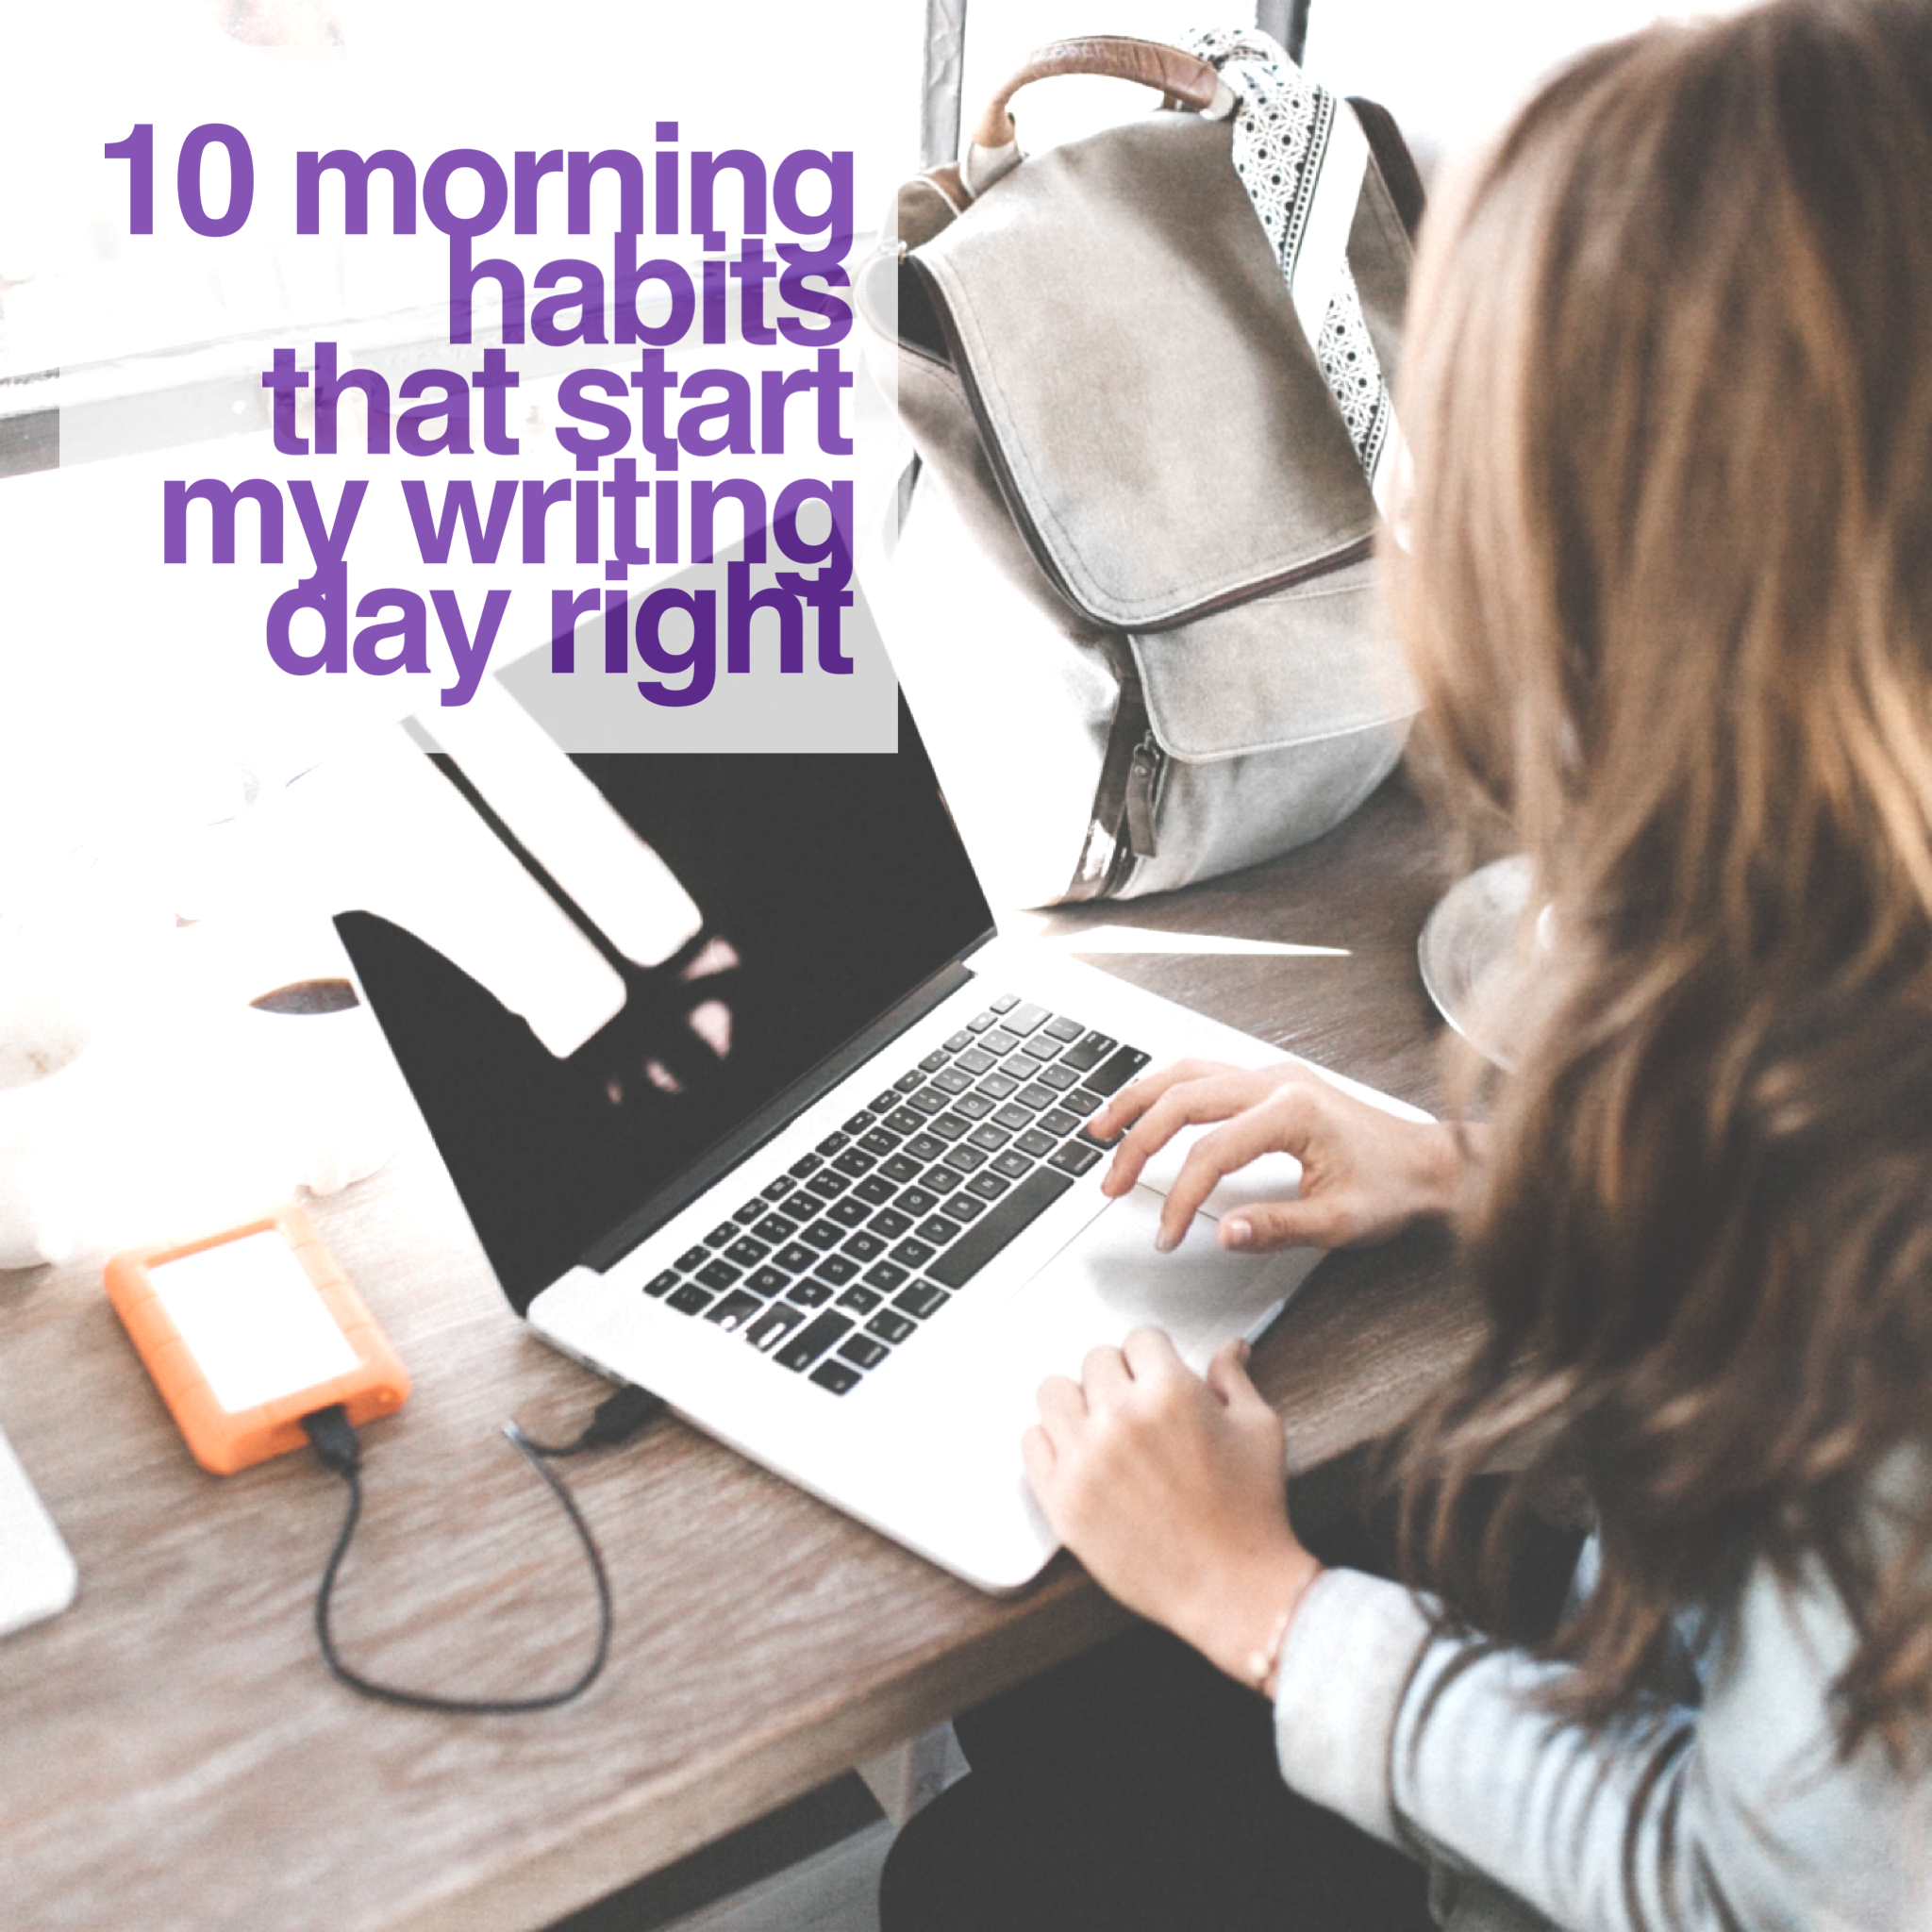 10 Writing Habits That Start My Writing Day Right - Part 3 by Diana Tyler